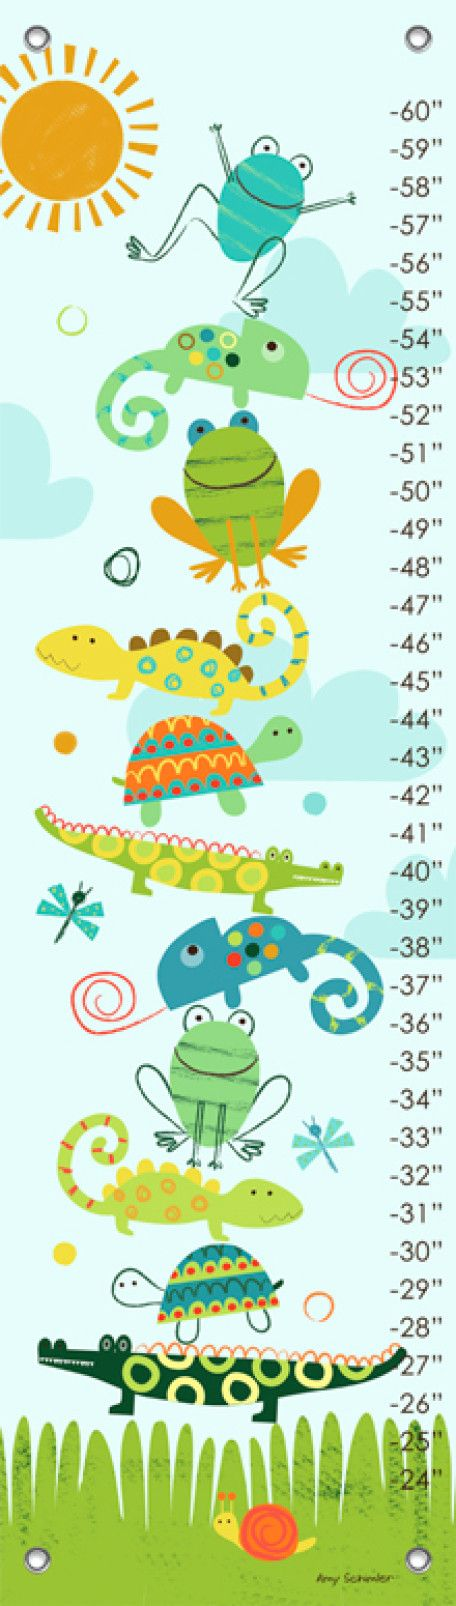 Crawly Critters Growth Charts